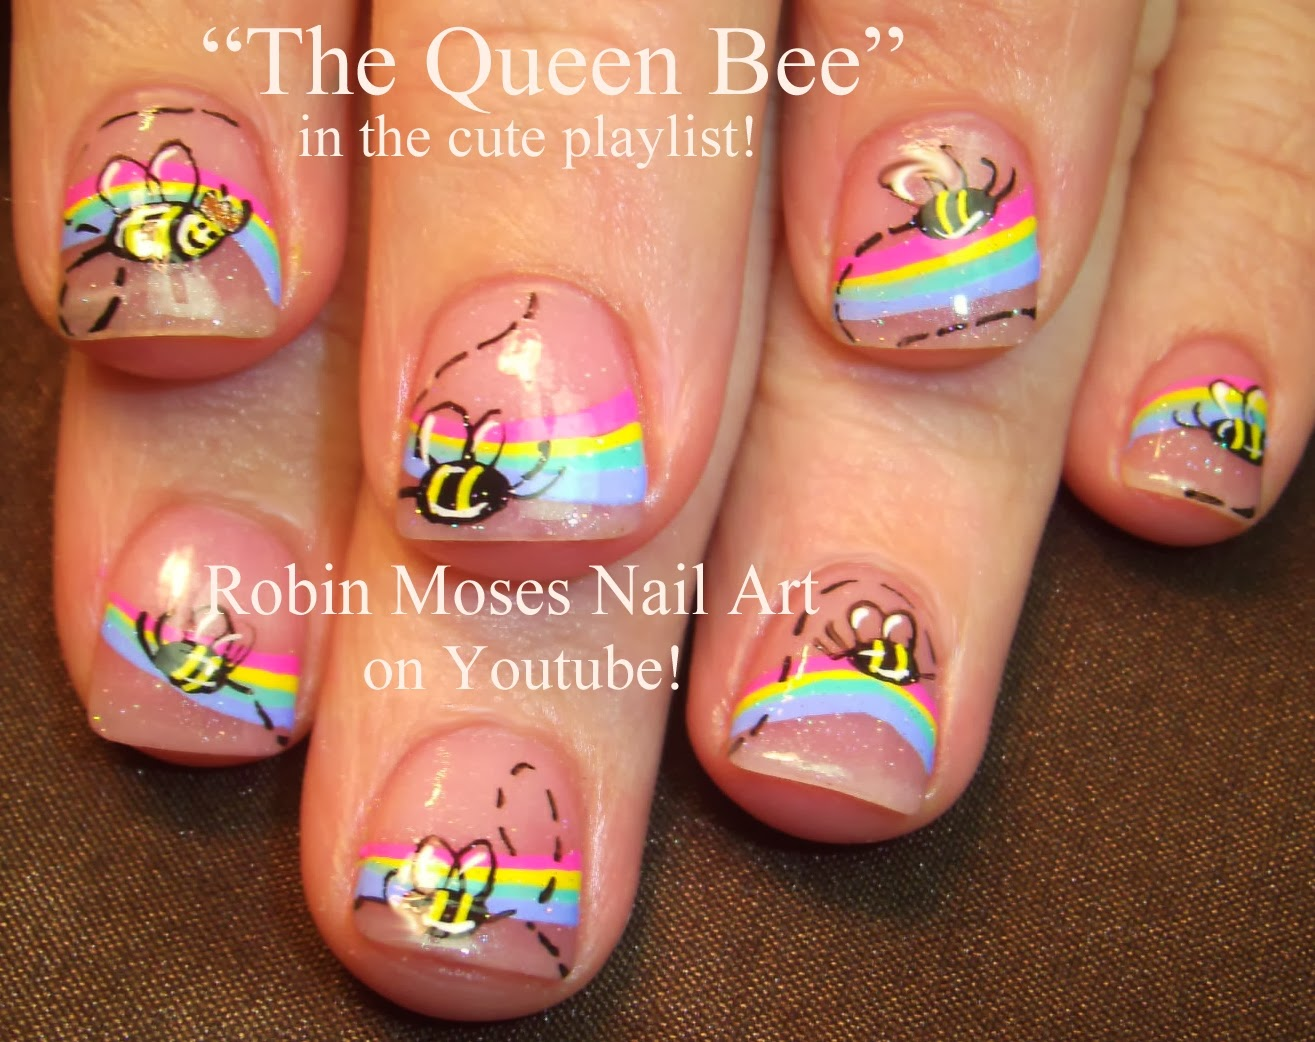 Robin moses nail art pastel leopard print queen bee design pastel leopard print queen bee design queen bee nail art pastel animal print nail art queen bee nails pastel animal queen bumblebee nailart prinsesfo Choice Image